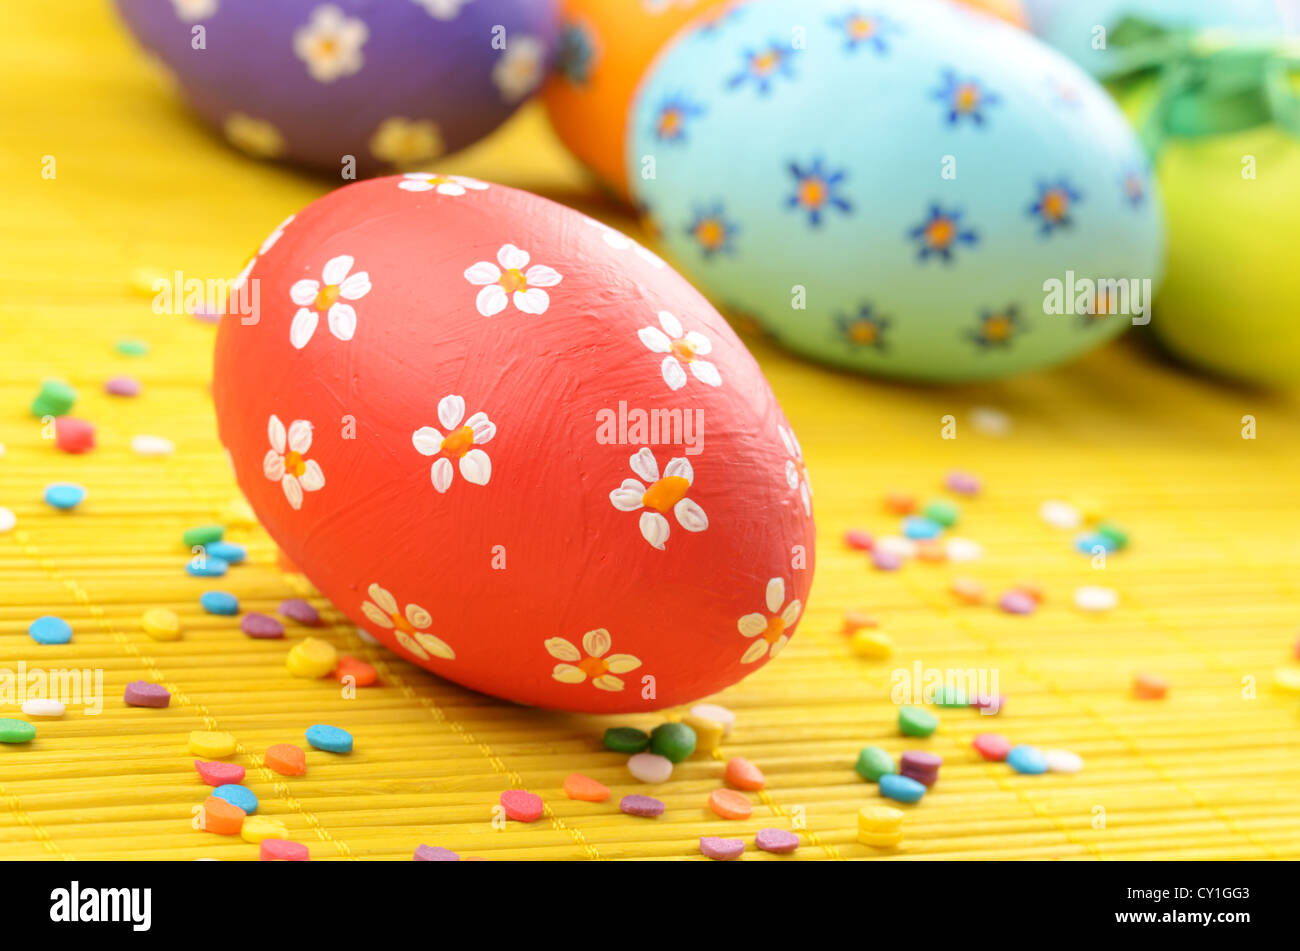 Easter decorations - eggs with painted flowers on the tabletop - Stock Image